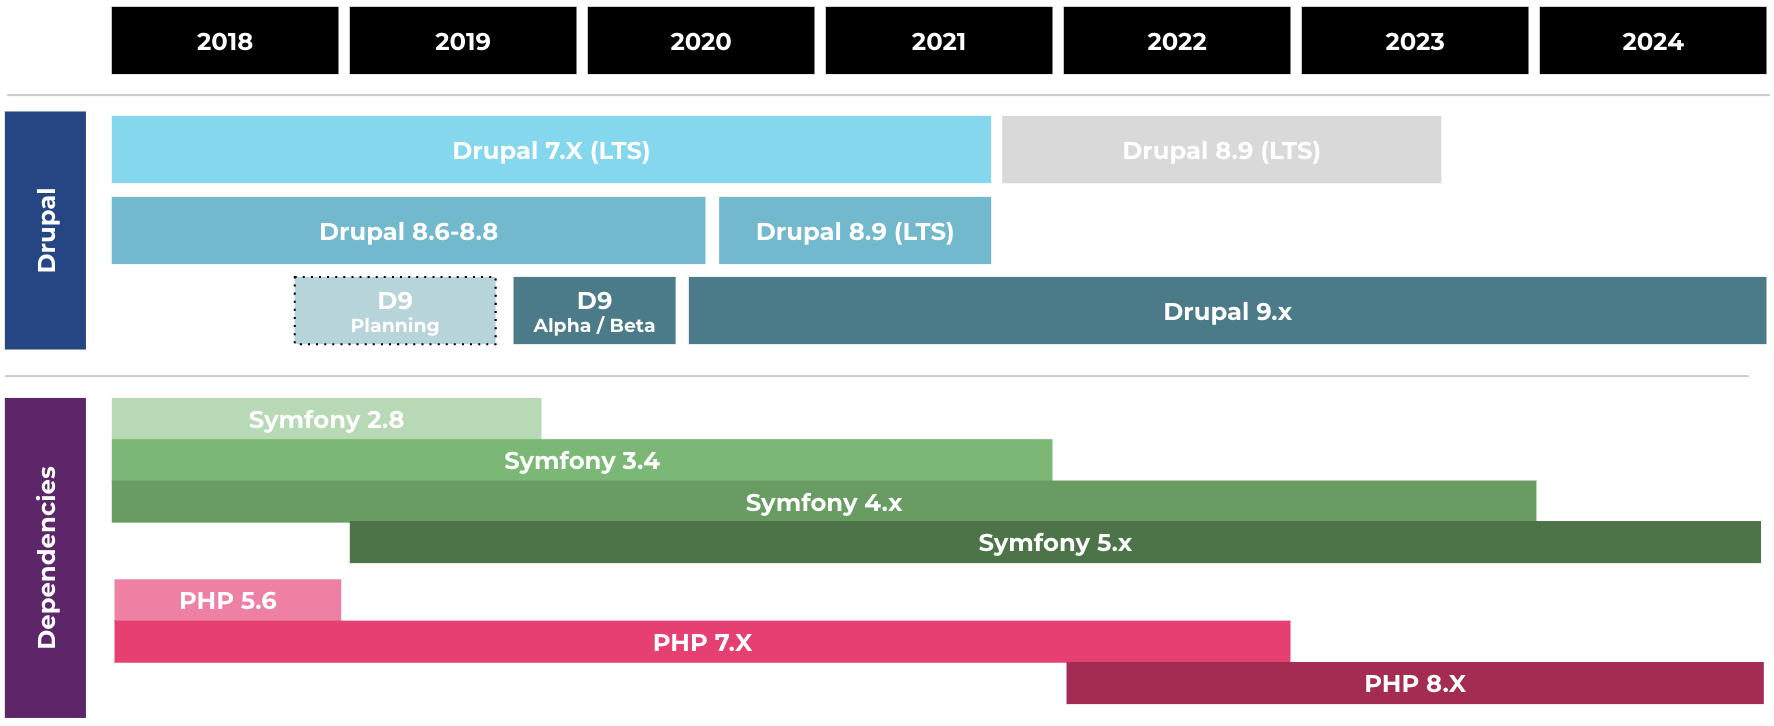 Image of Drupal 9 upgrade timeline compared to Symfony release timeline